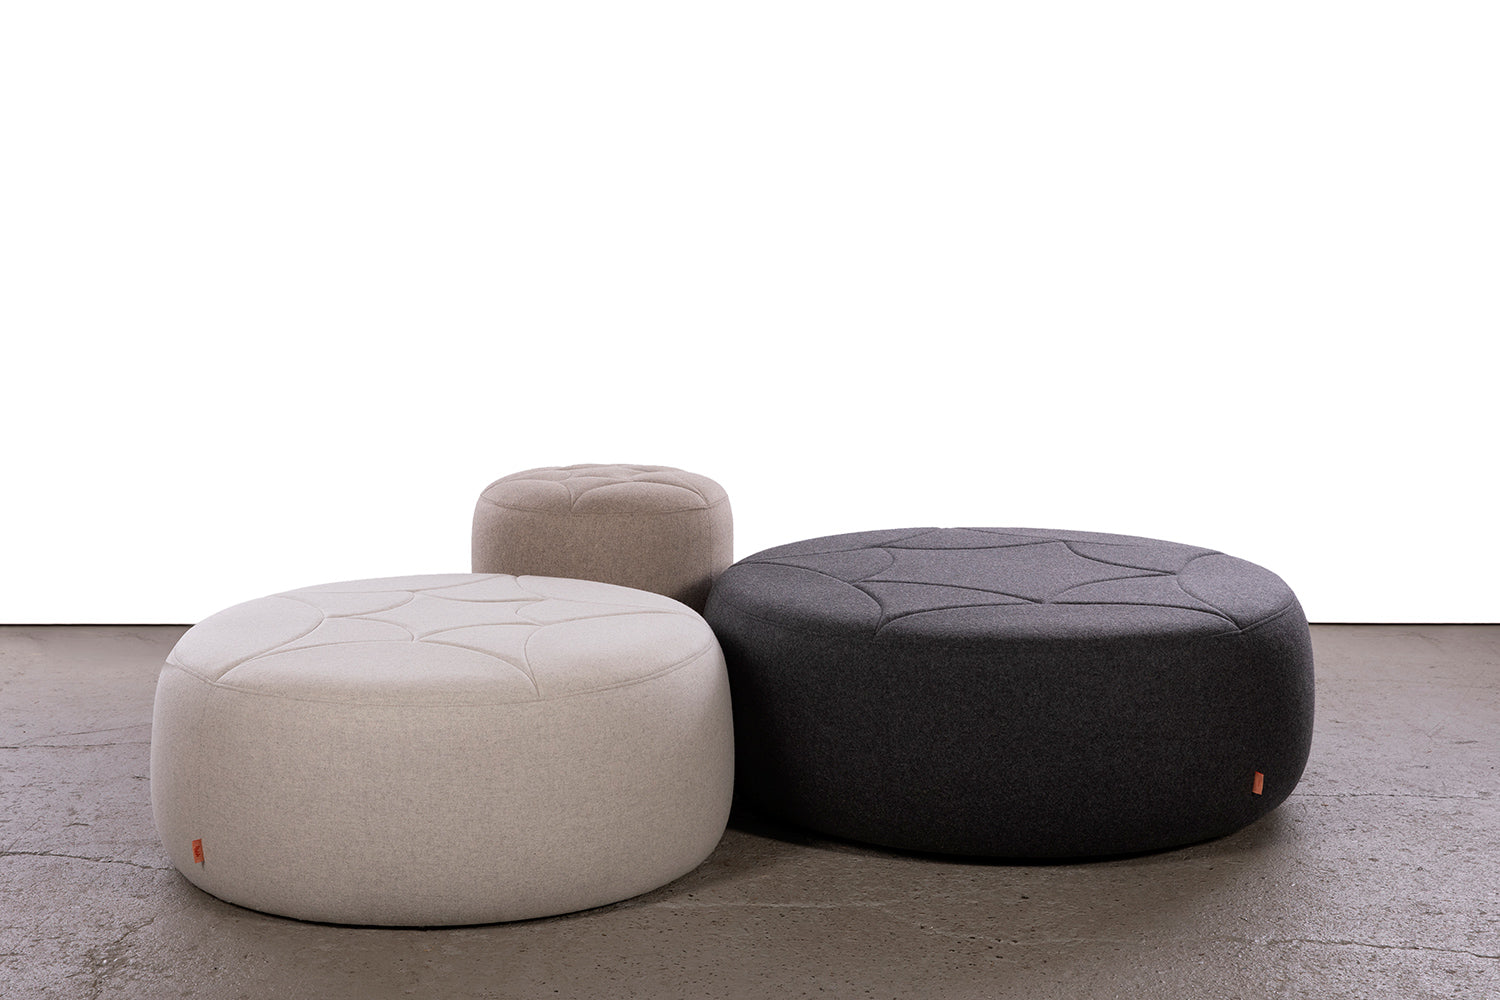 ffabb 3's companee ottoman, wool blend quilted seats